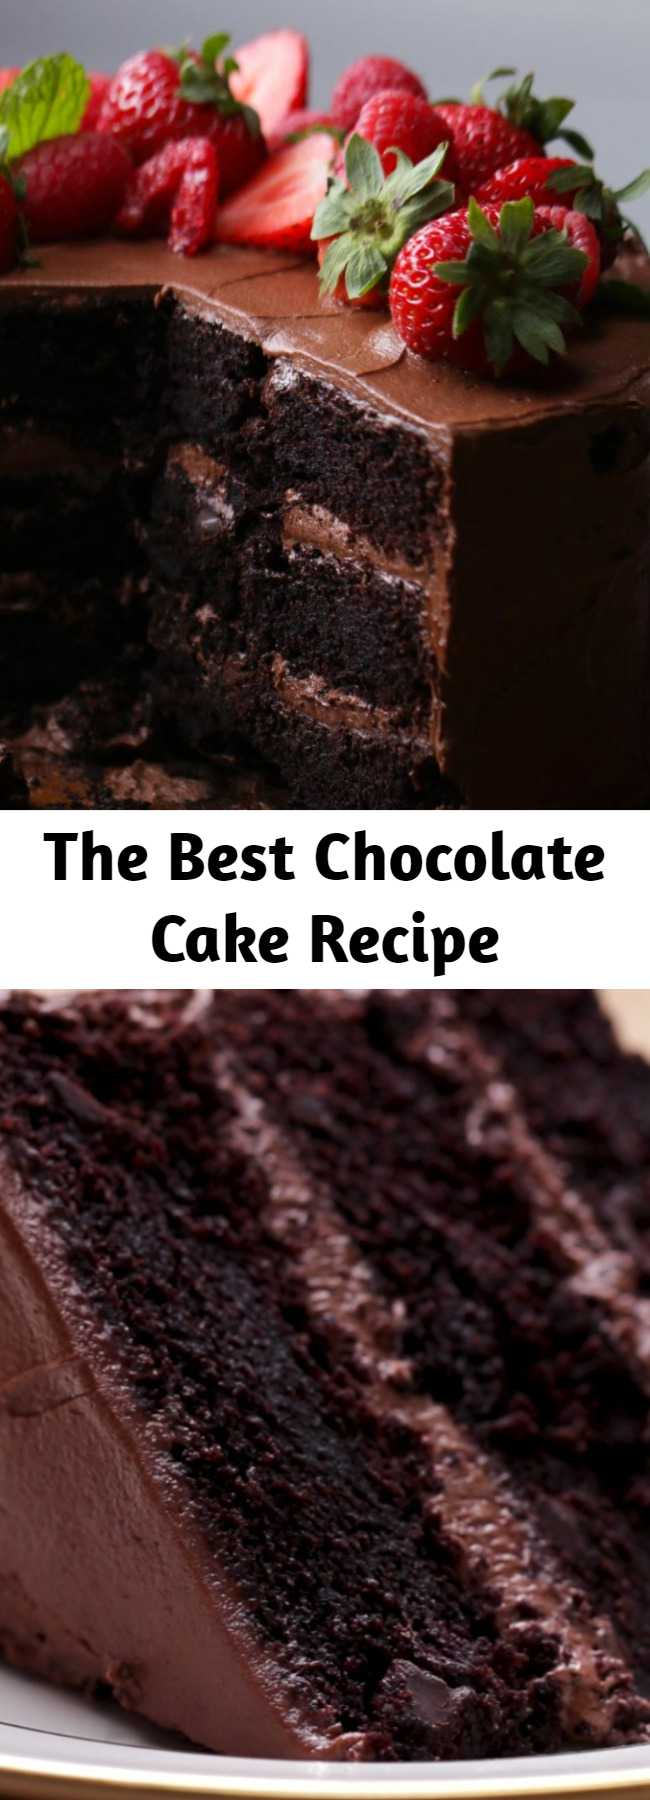 The Best Chocolate Cake Recipe - The Ultimate Chocolate Cake. This cake was a massive hit for a friends birthday, super moist and tasty! #cake #chocolate #dessert